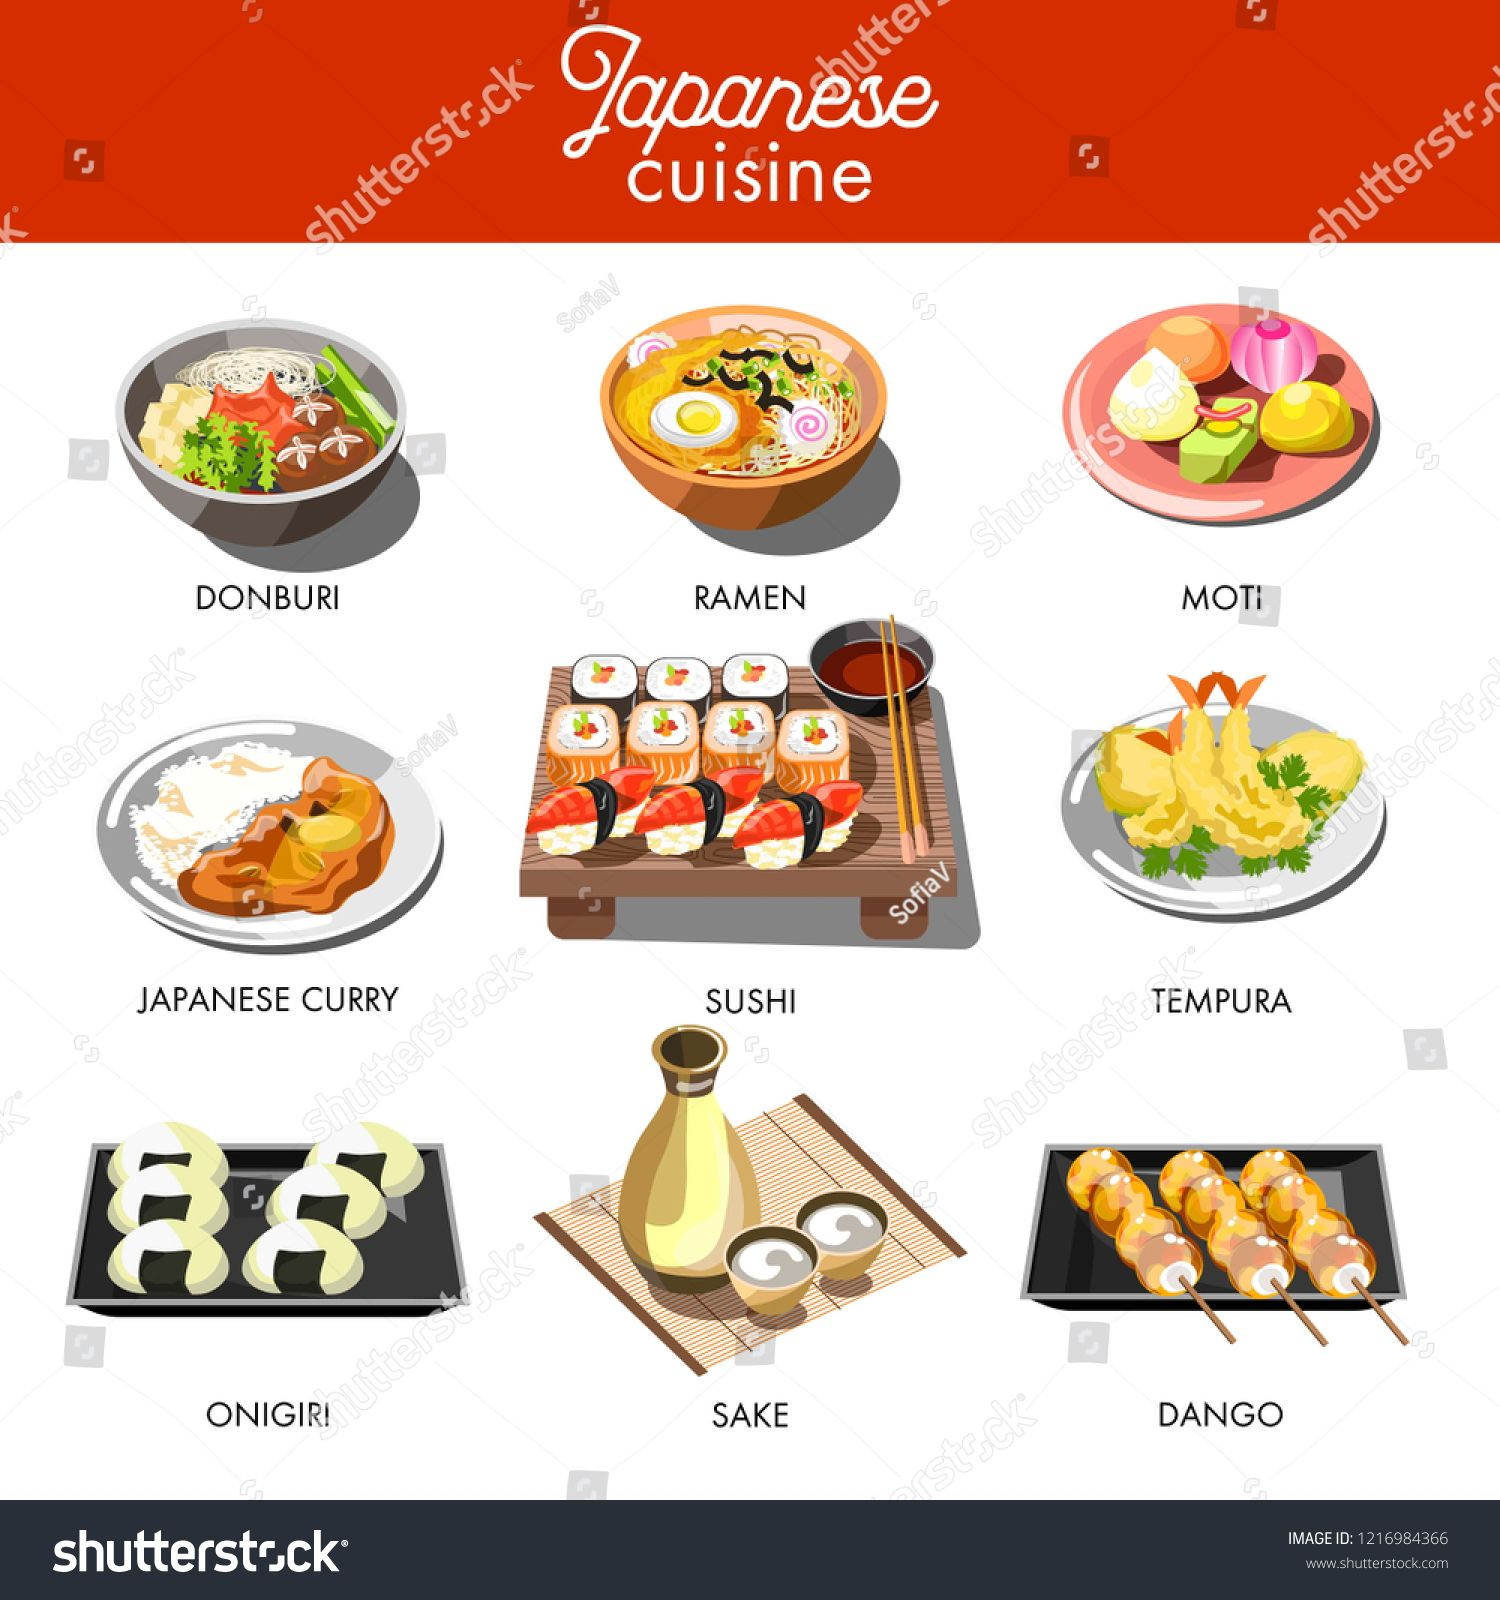 Japanese Cuisine Traditional Dishes Of Ramen And Udon Donburi Noodles Onigiri Seafood Tempura Sushi Rolls Miso Soup In 2020 Tempura Sushi Food Concept Halal Recipes